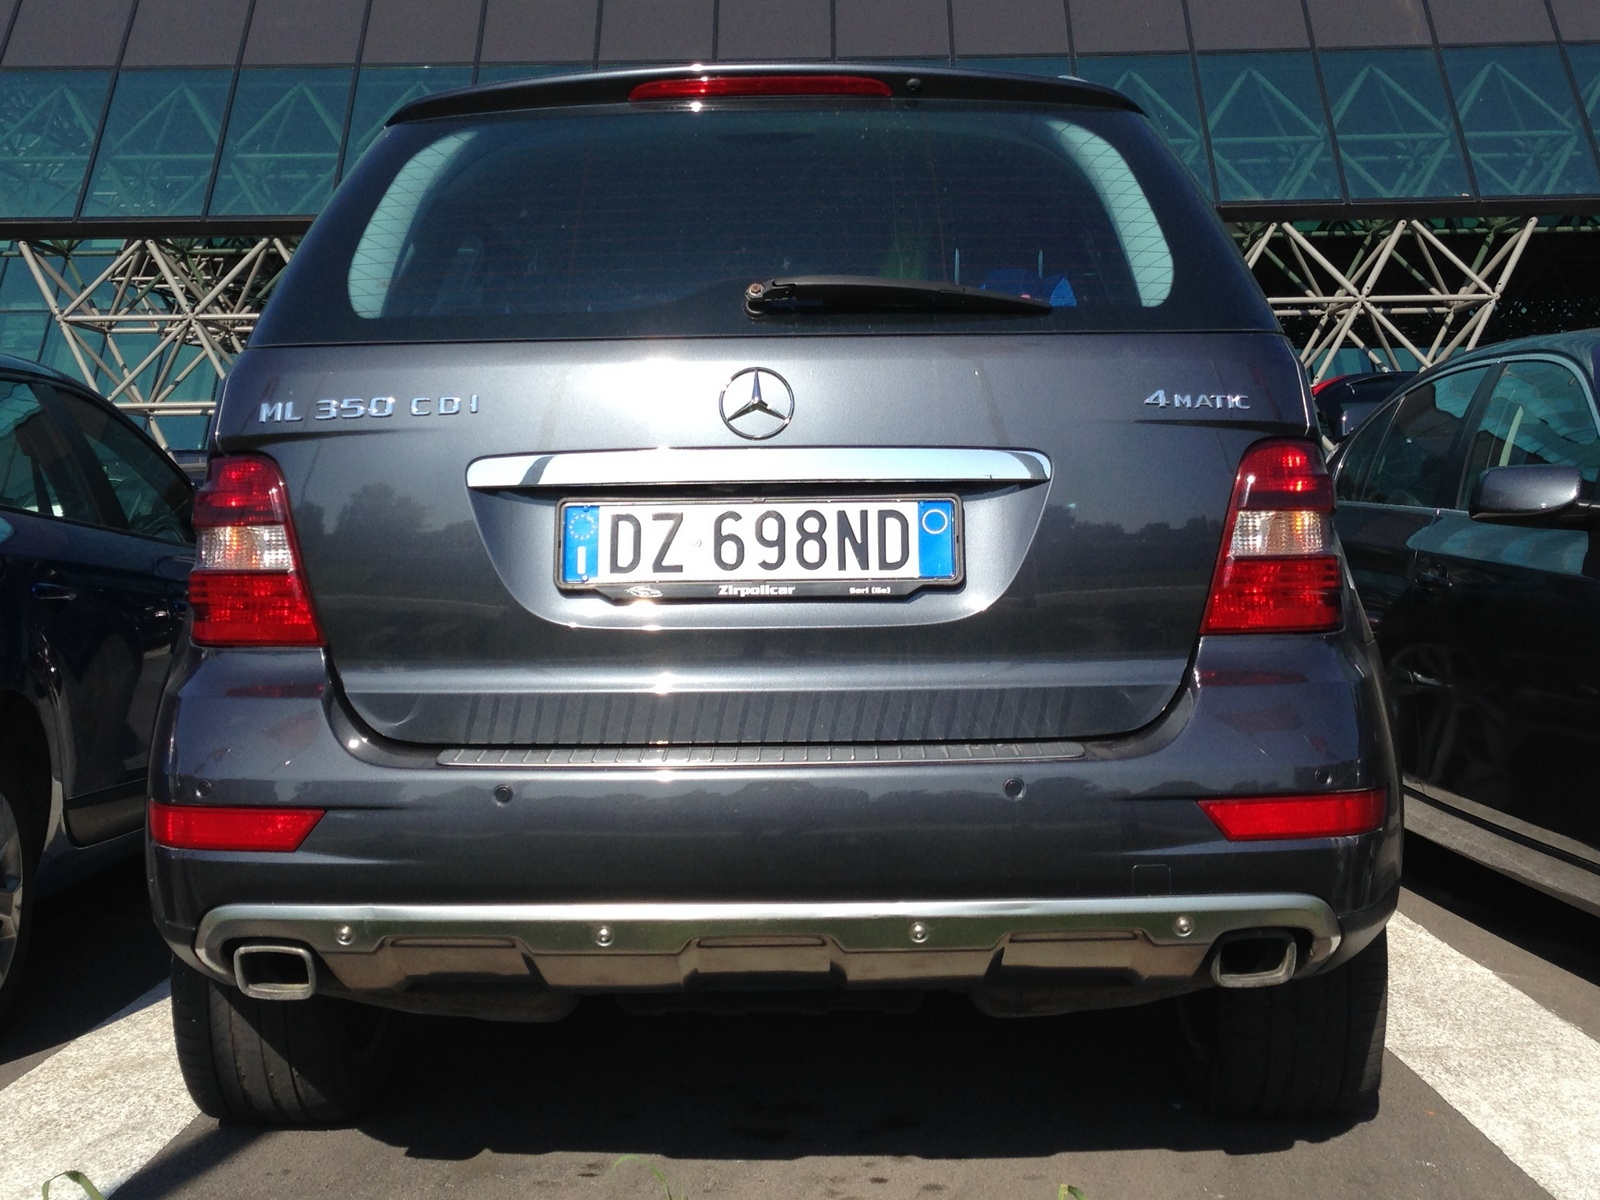 Vehicle registration plates of BMW X6 & Mercedes ML